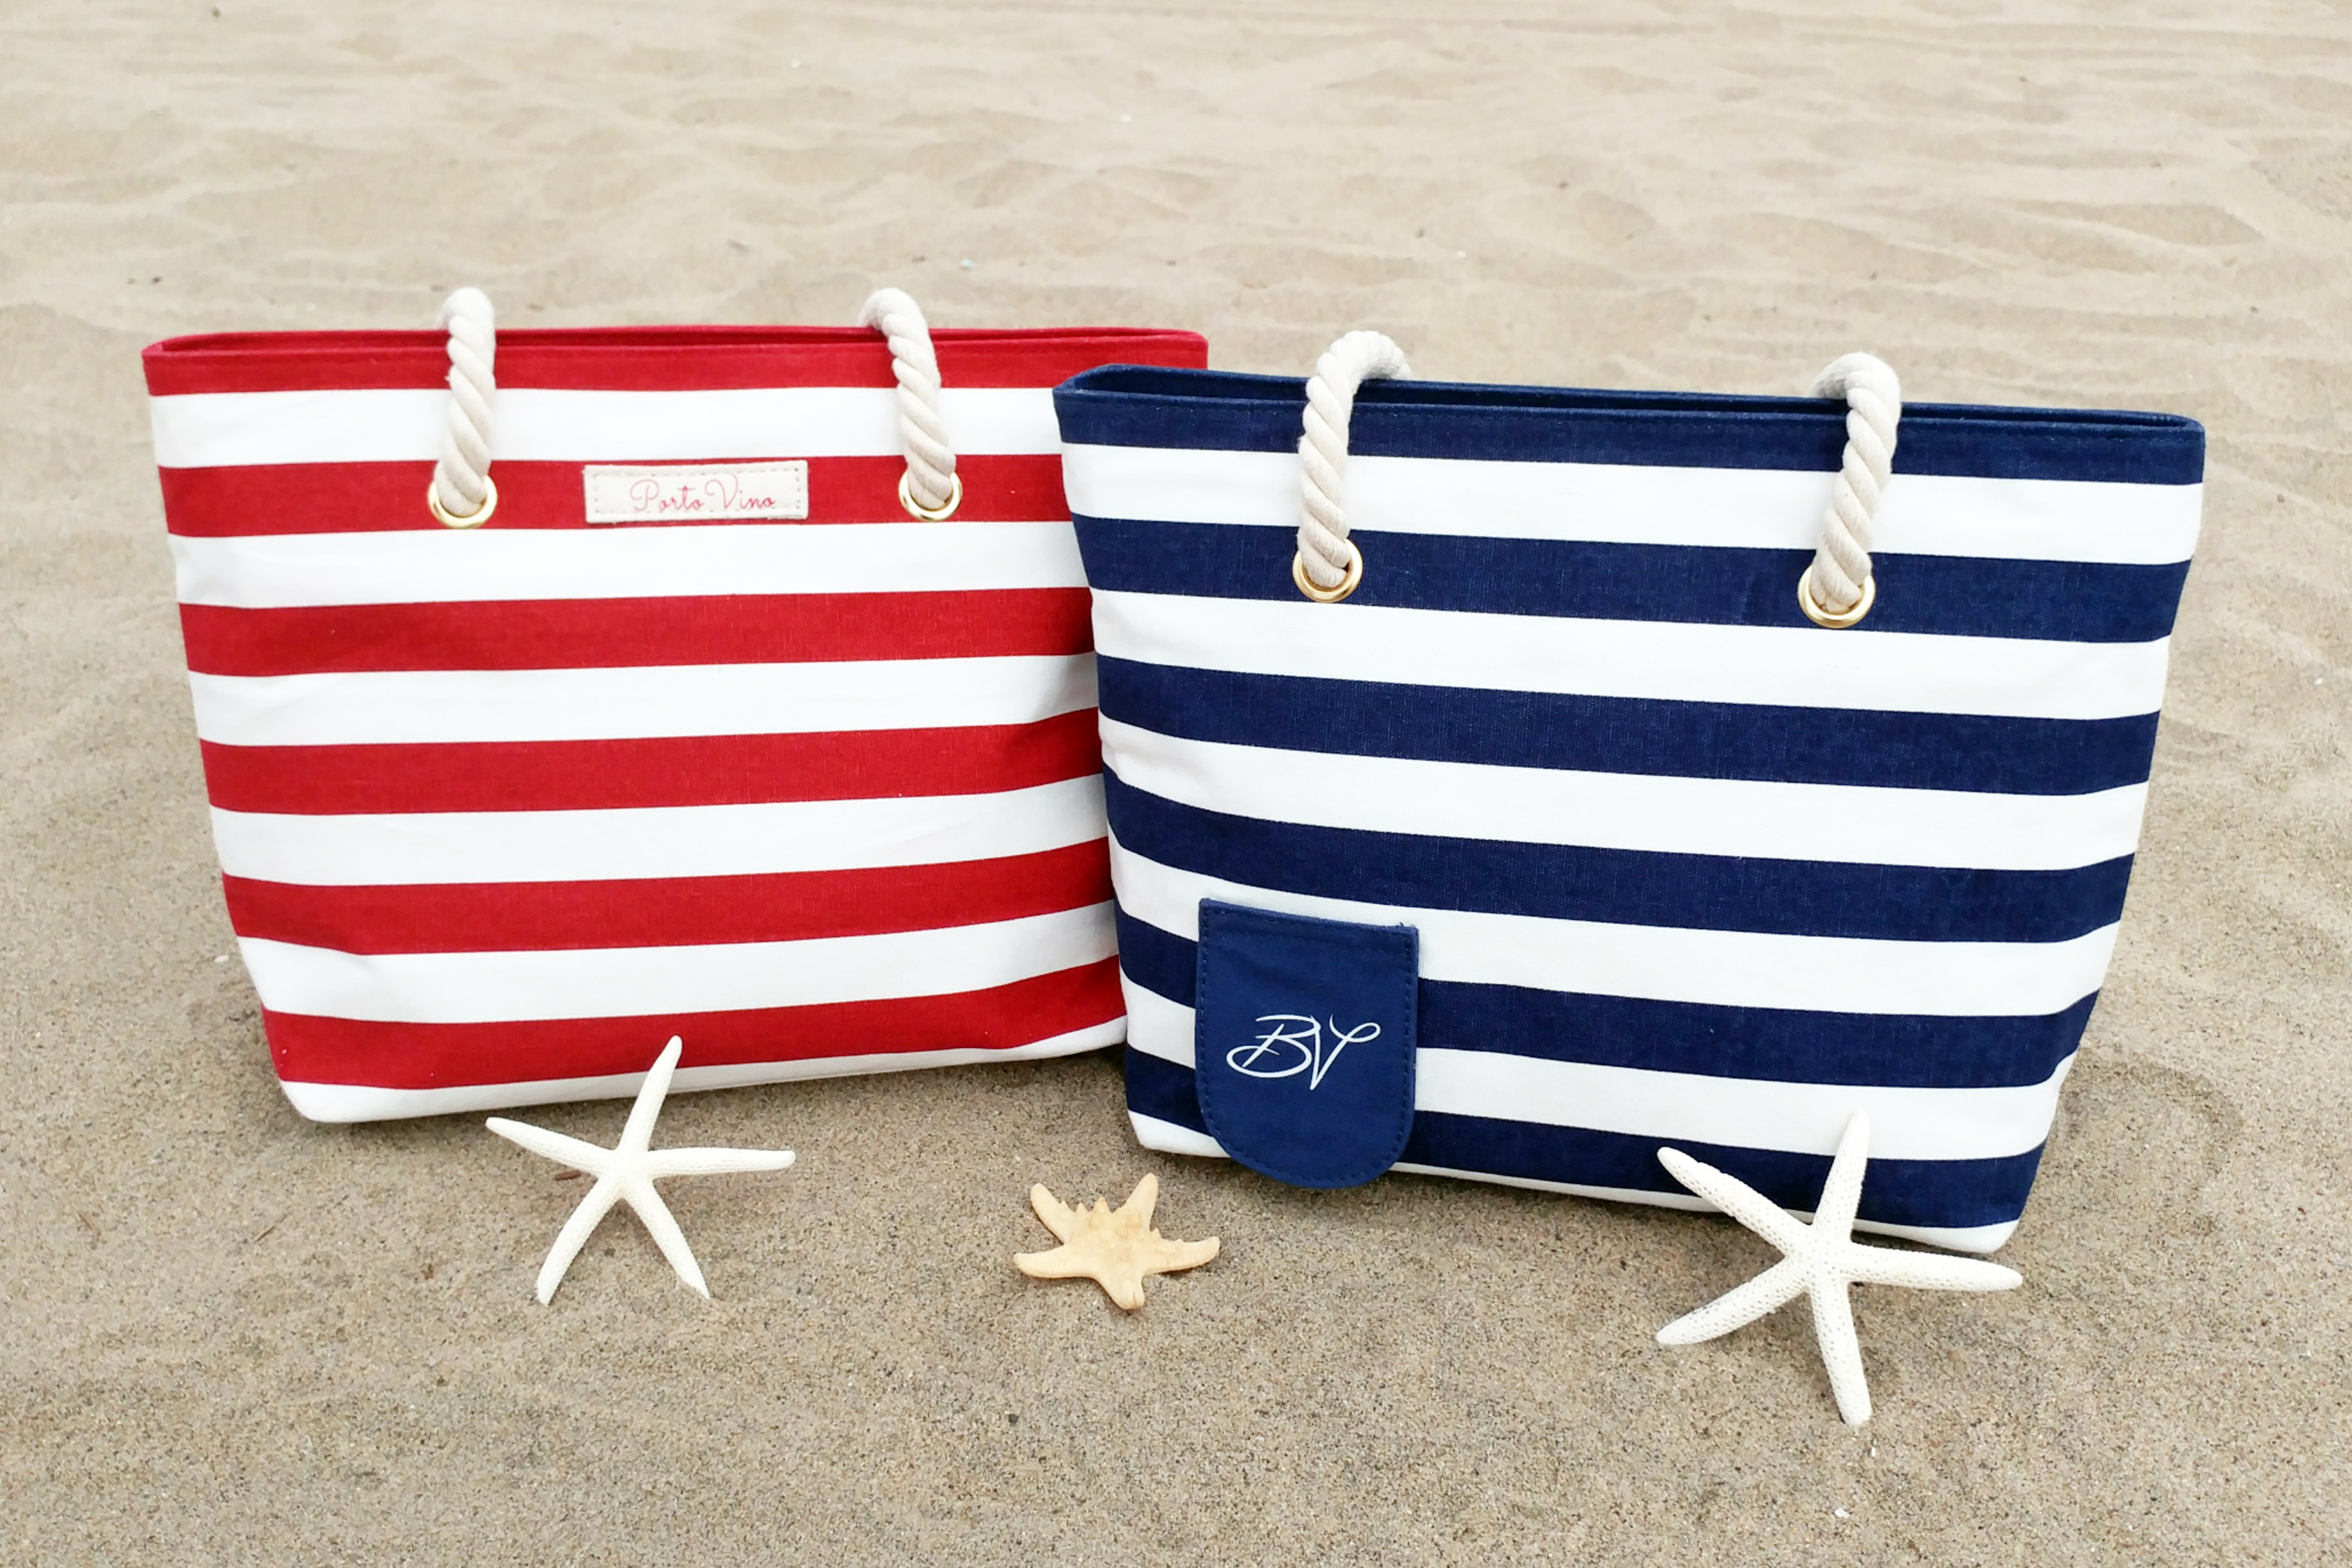 These canvass bags from from Pheonix-based company Bella Vita are perfect for the beach.